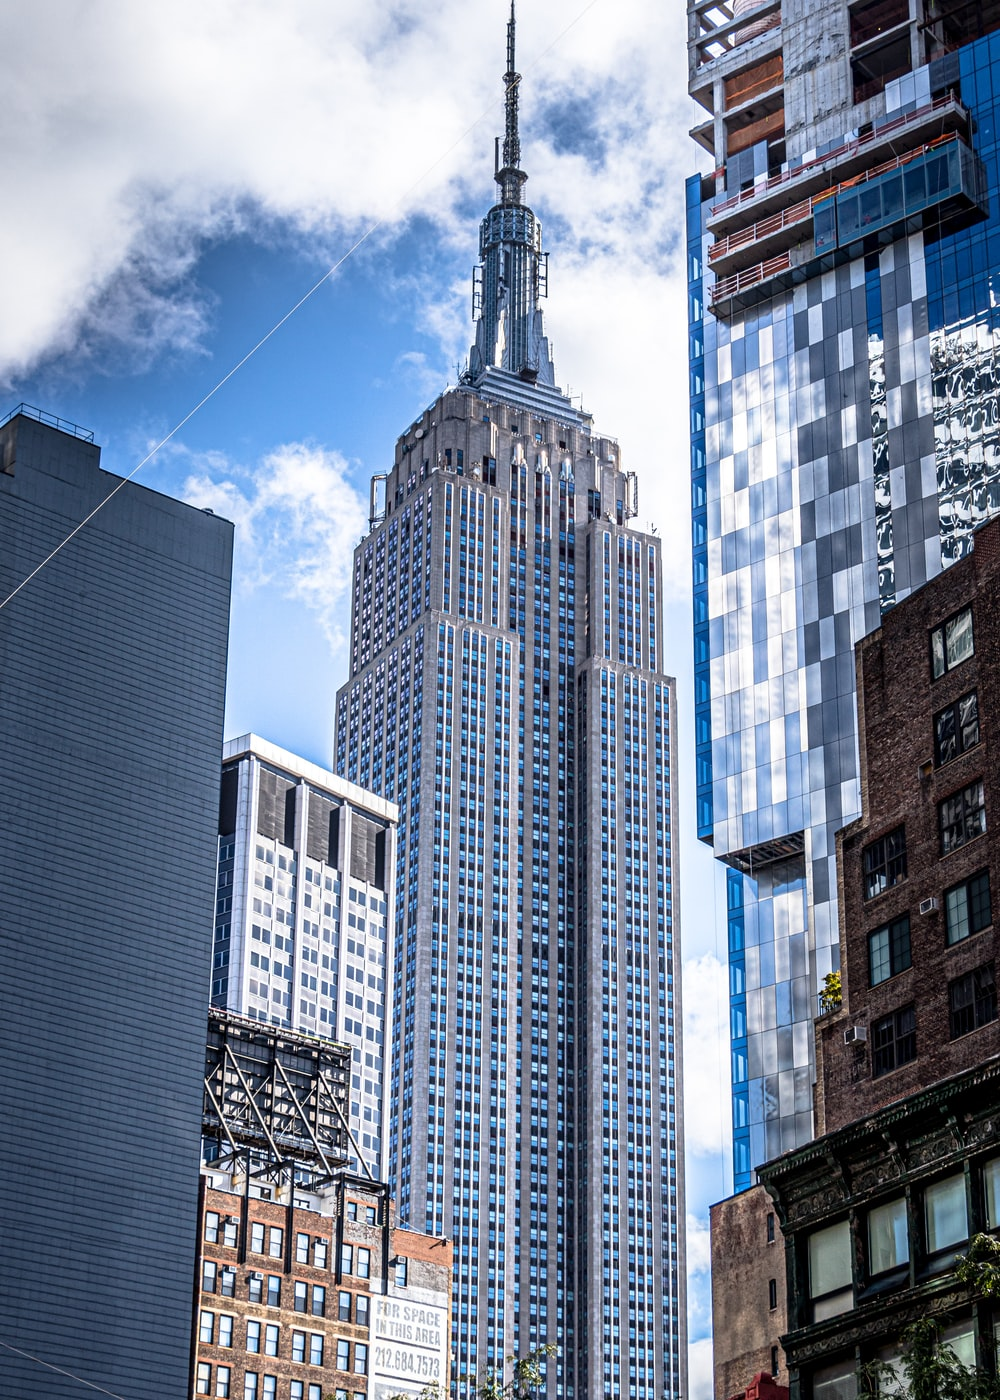 Empire State Building during daytime